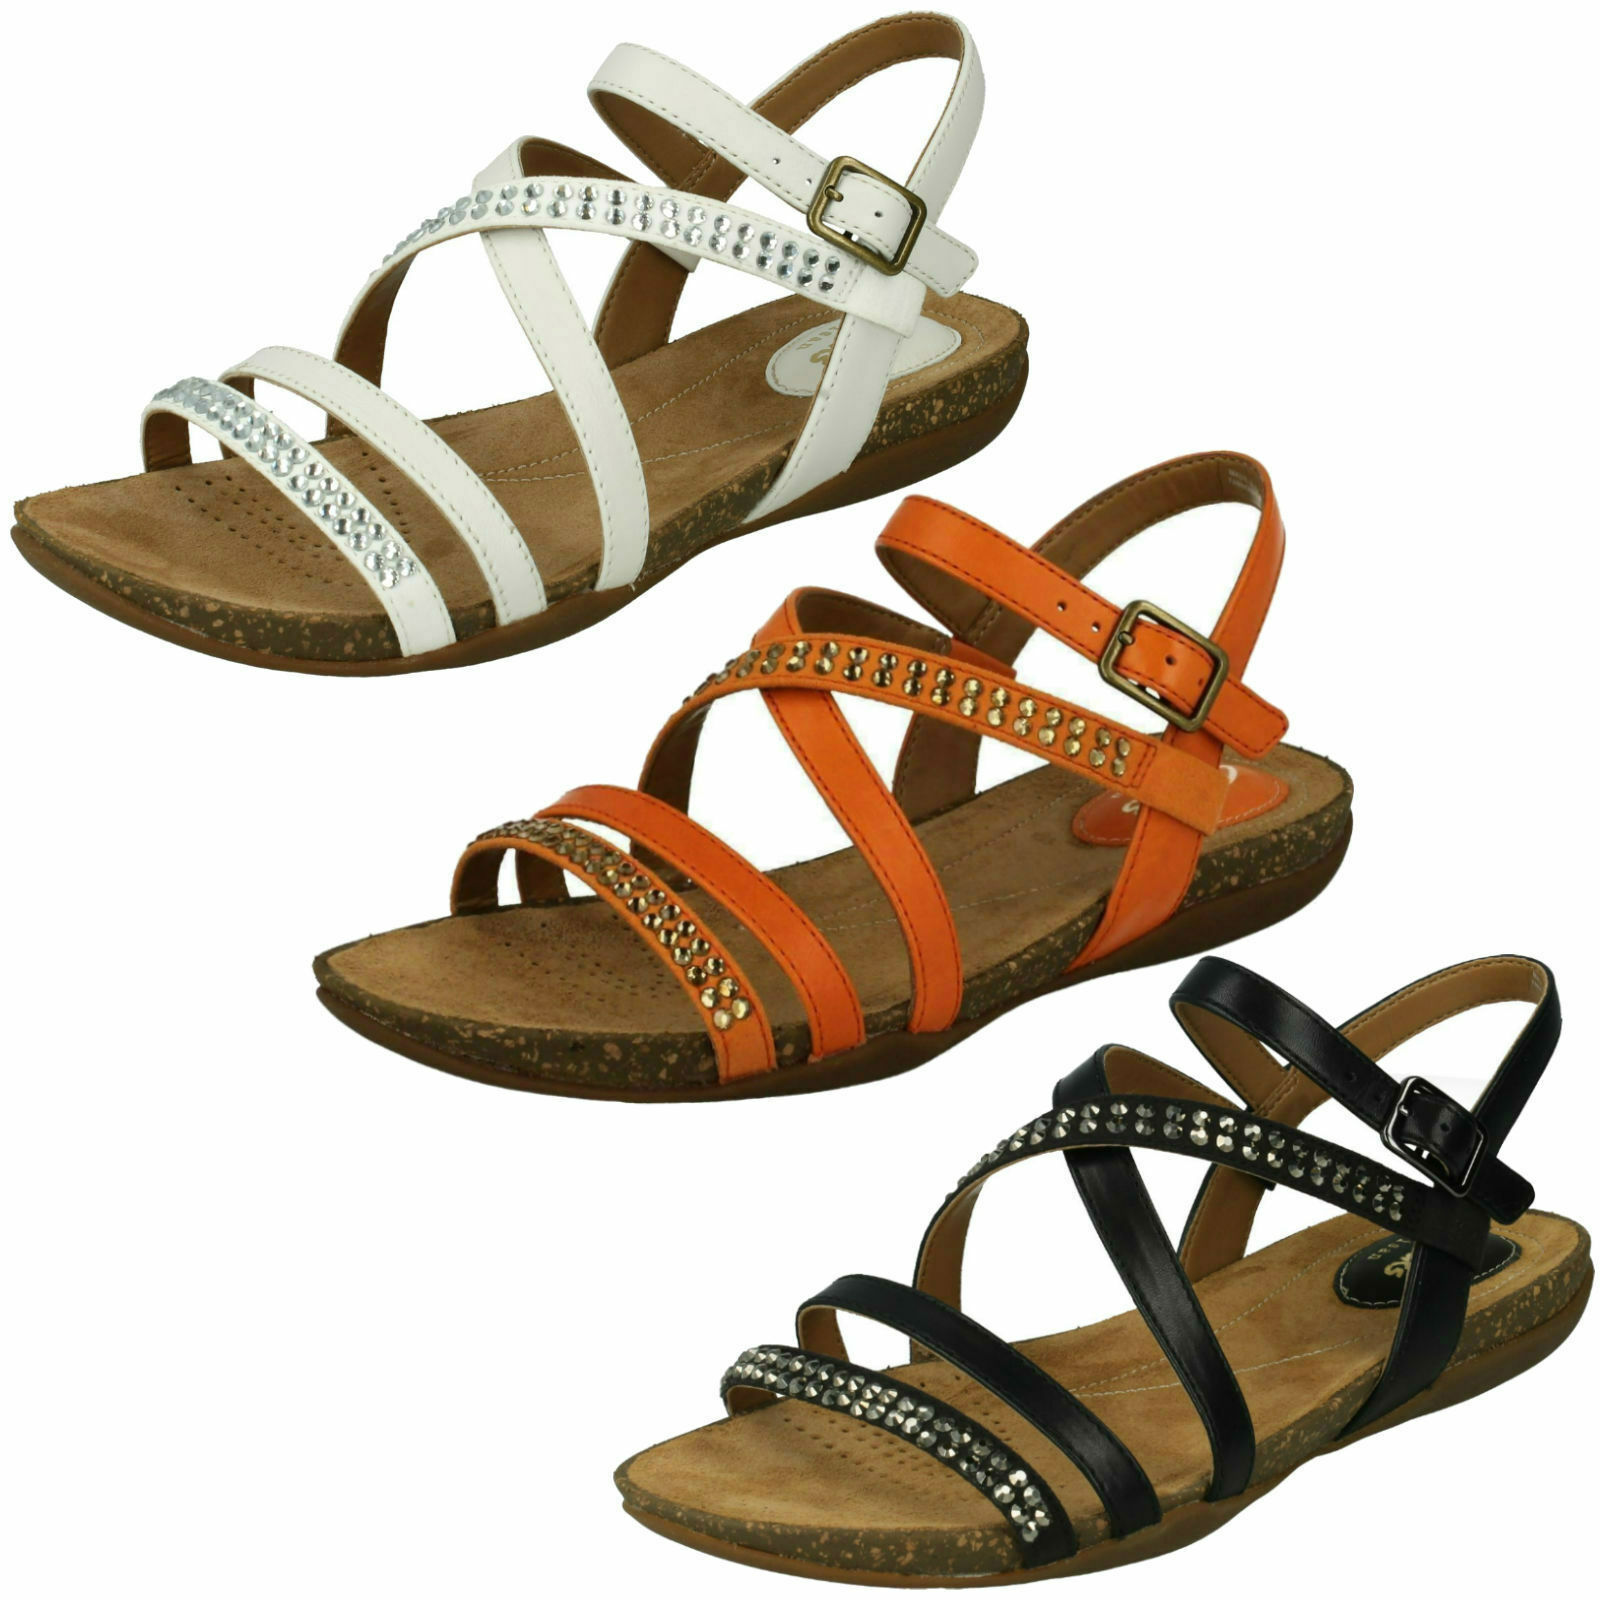 LADIES CLARKS LEATHER BUCKLE SLINGBACK CASUAL FLAT STRAPPY SANDALS AUTUMN PEACE